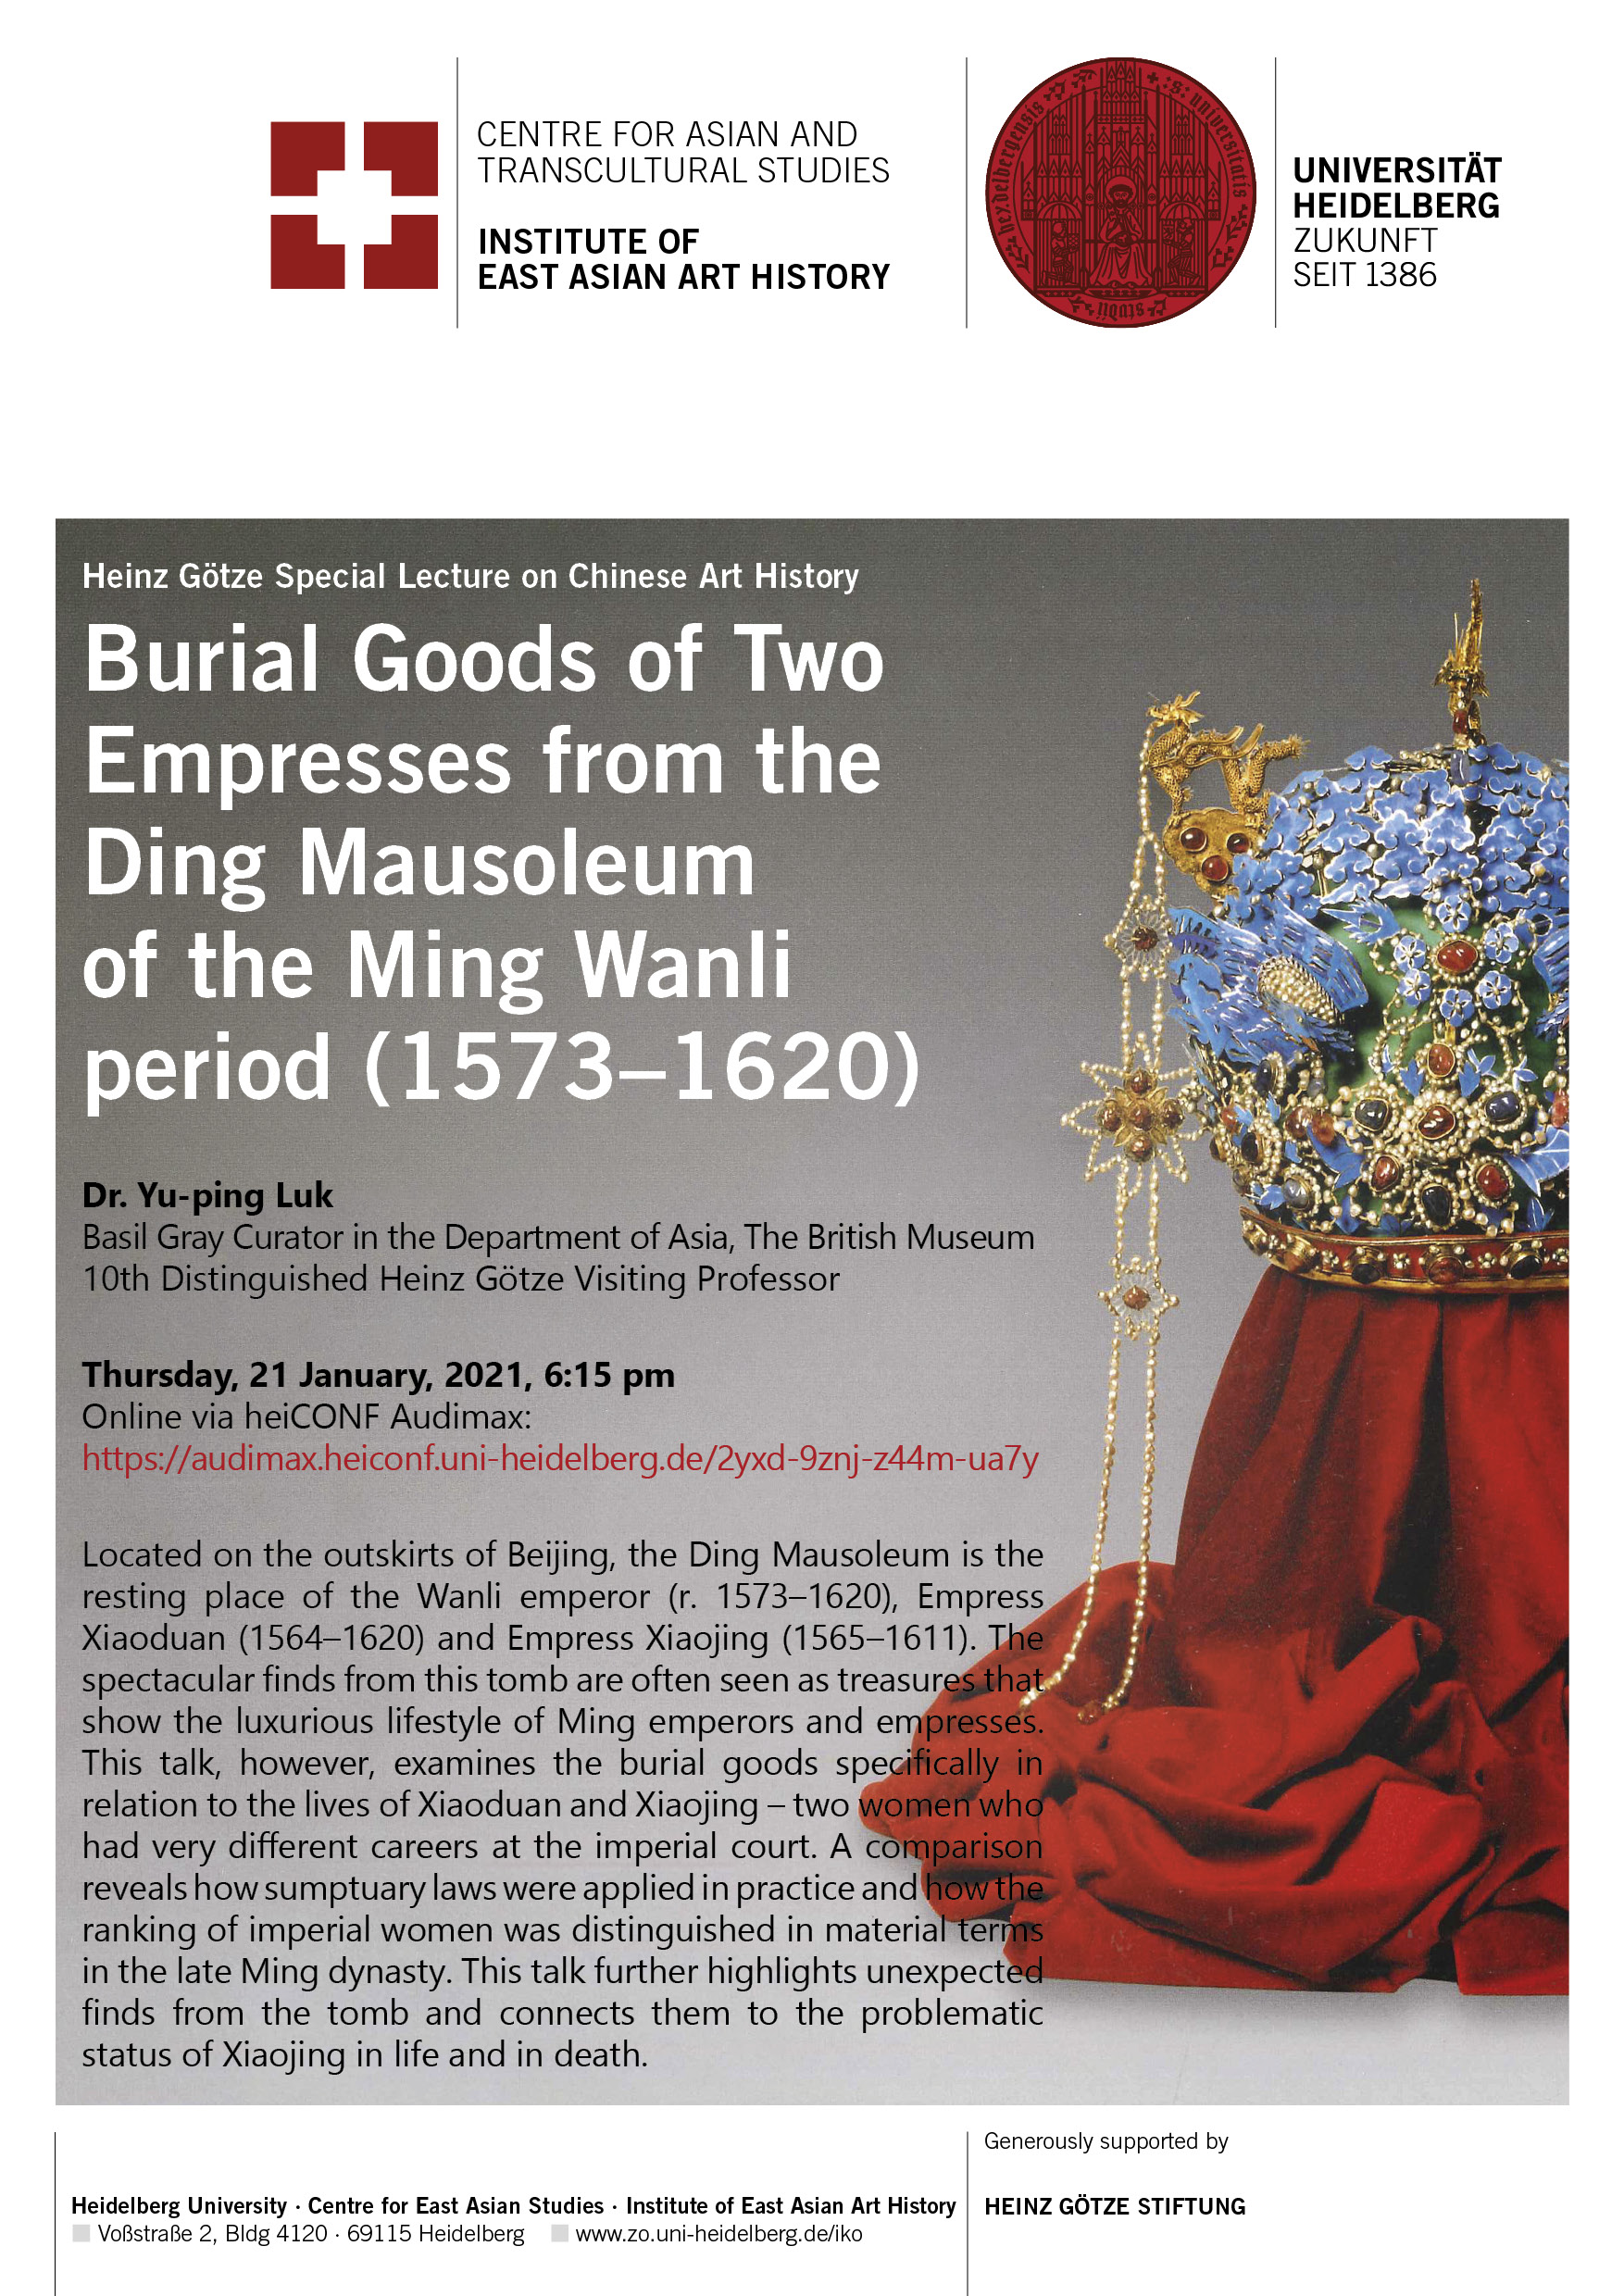 Dr. Luk Yu-ping: Burial Goods of Two Empresses from the Ding Mausoleum of the Ming Wanli period (1572–1620)